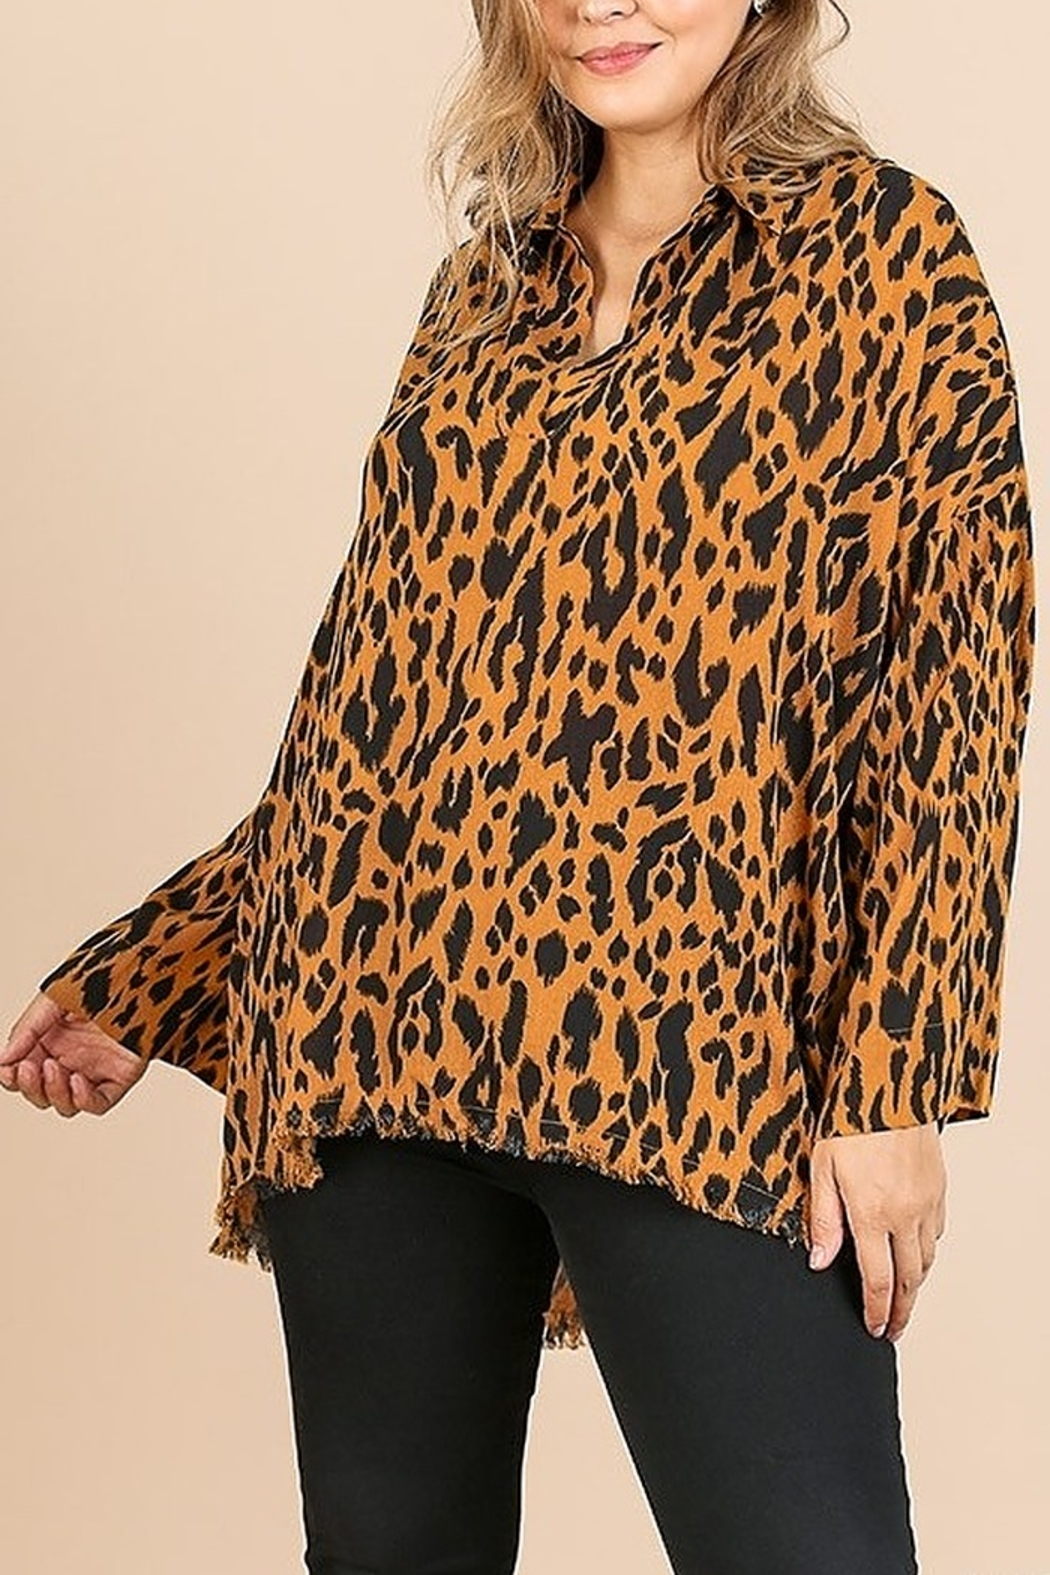 Umgee PLUS SIZE Animal Print Long Sleeve V-Neck - Main Image